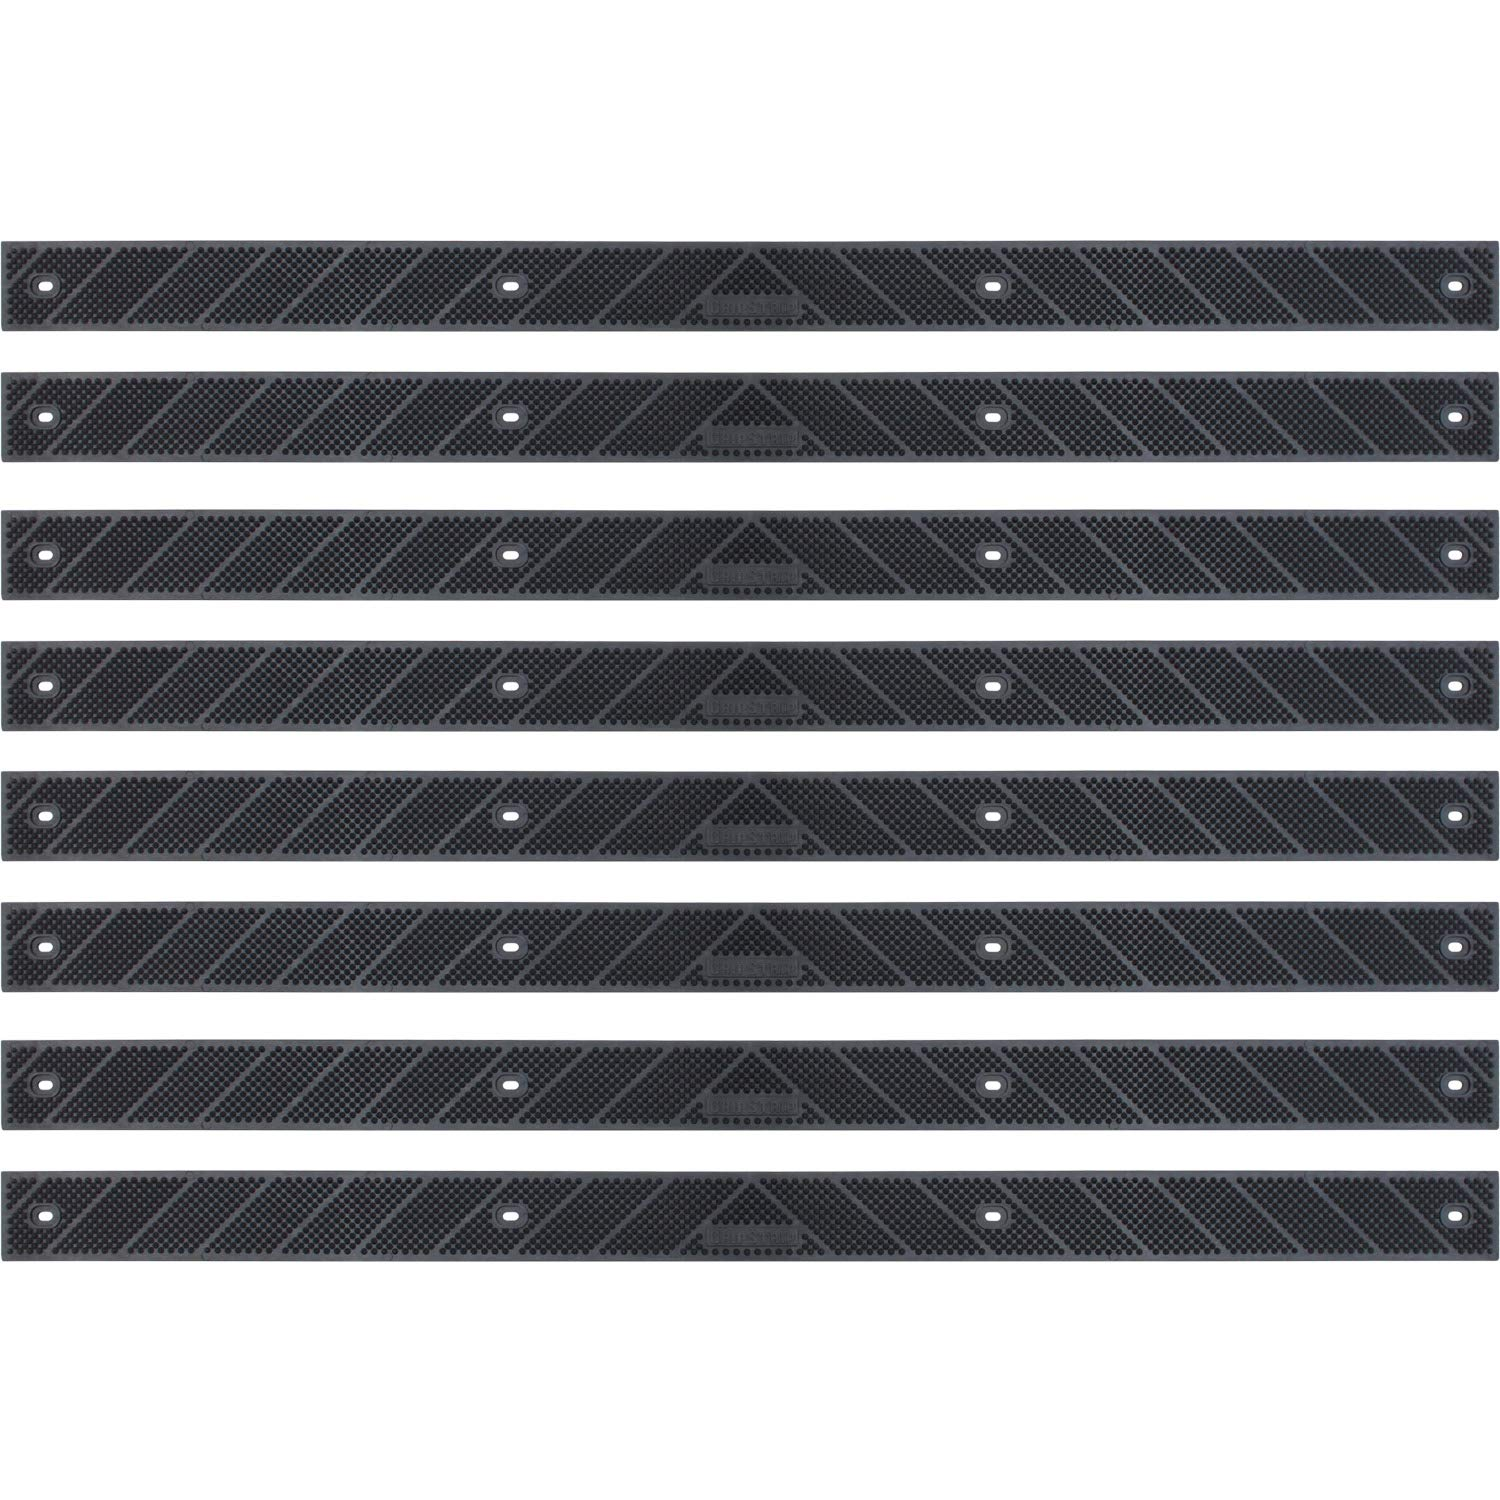 Grip Strip Black Treads, Screw Down Strip No Adhesive all Weather Deep Valley Abrasive Traction - Increase Safety & Injury in your Home or Outdoor Settings, L 32'' x W 2'', 1/8 thickness (8 Pack, Black) by GripStrip